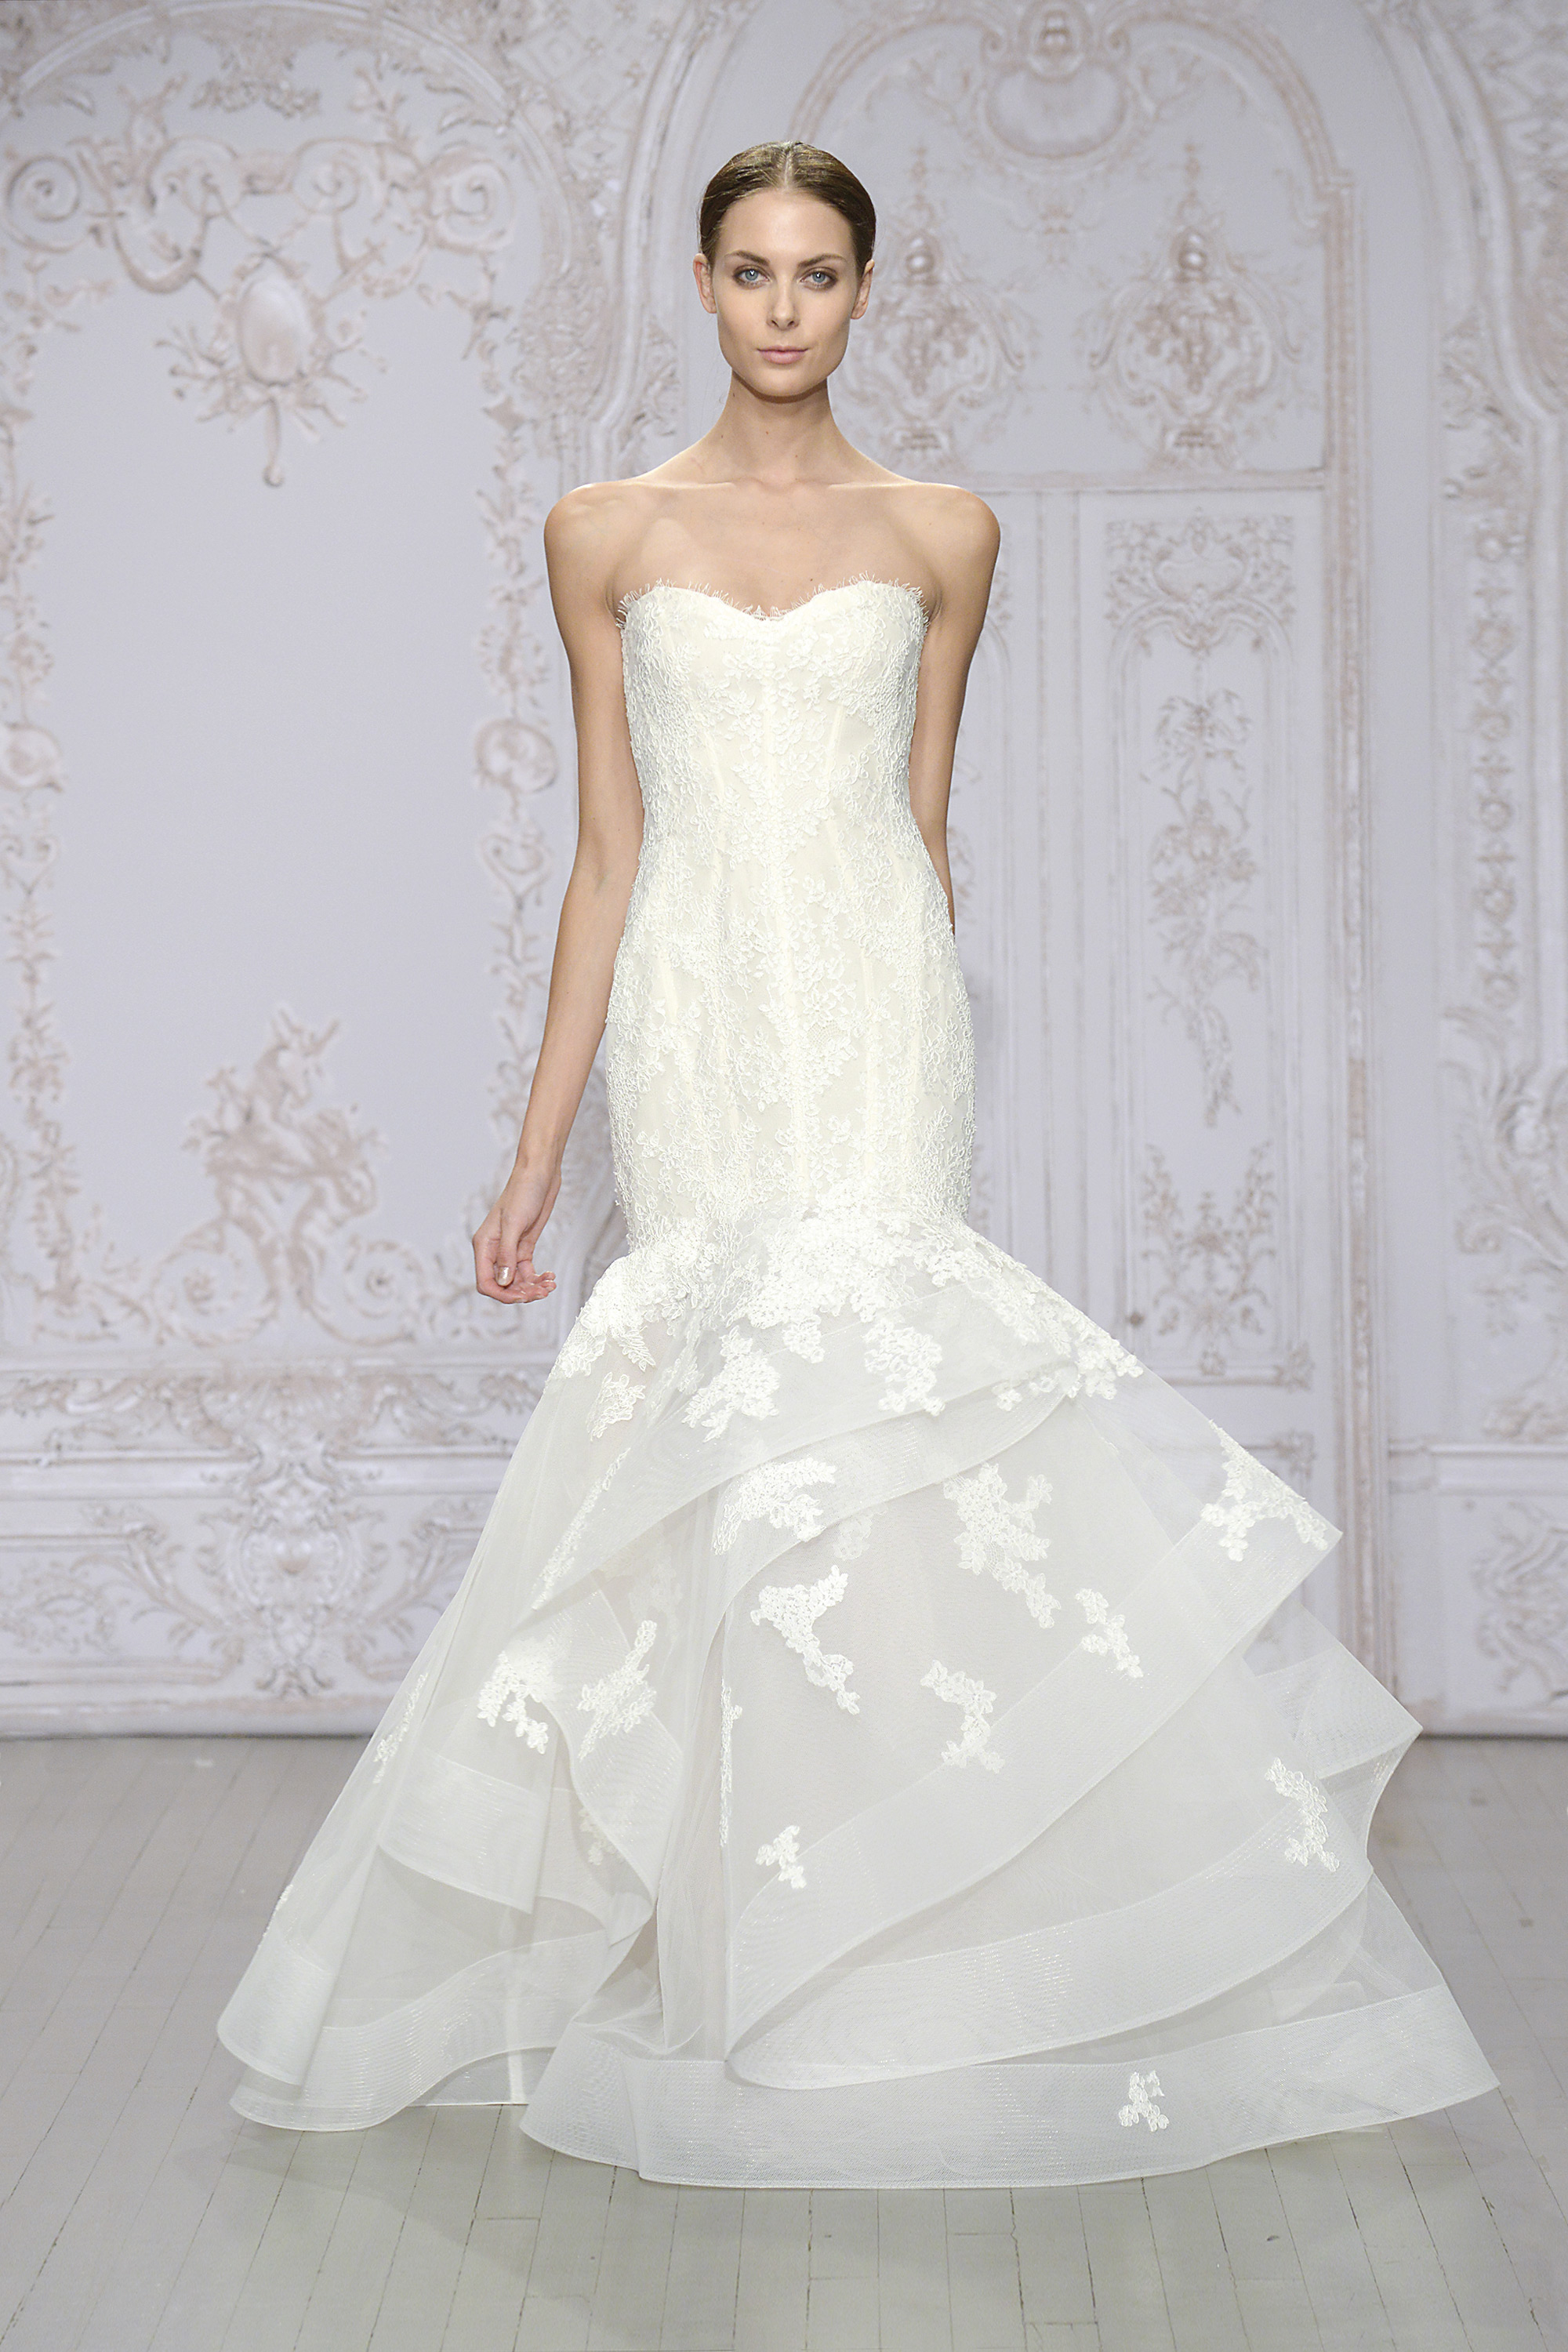 Monique lhuillier bridal collection it girl weddings for Monique lhuillier wedding dress